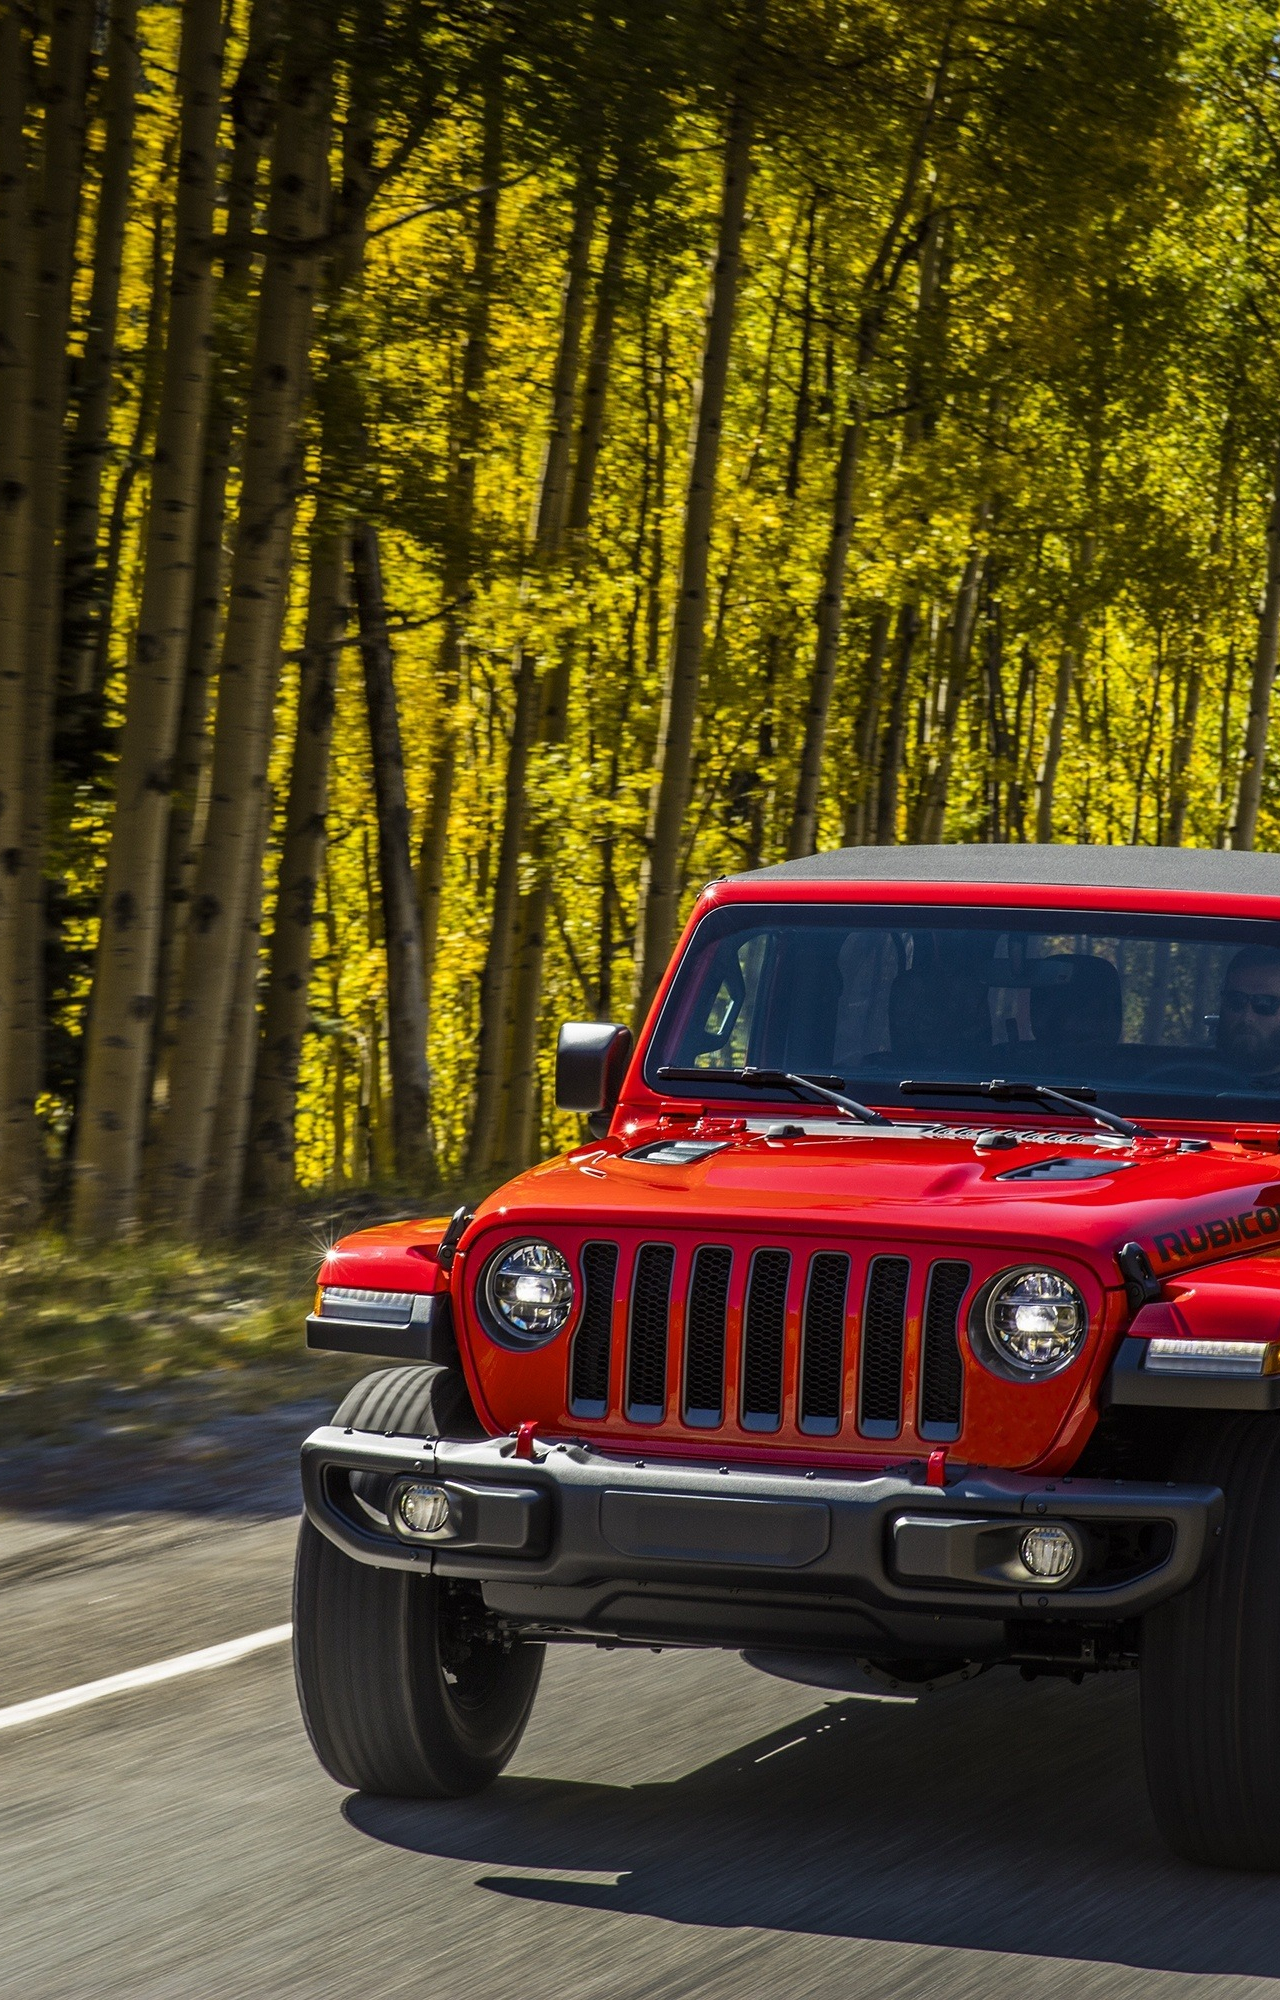 Download 1280x2120 Wallpaper Red Jeep Wrangler Suv On Road